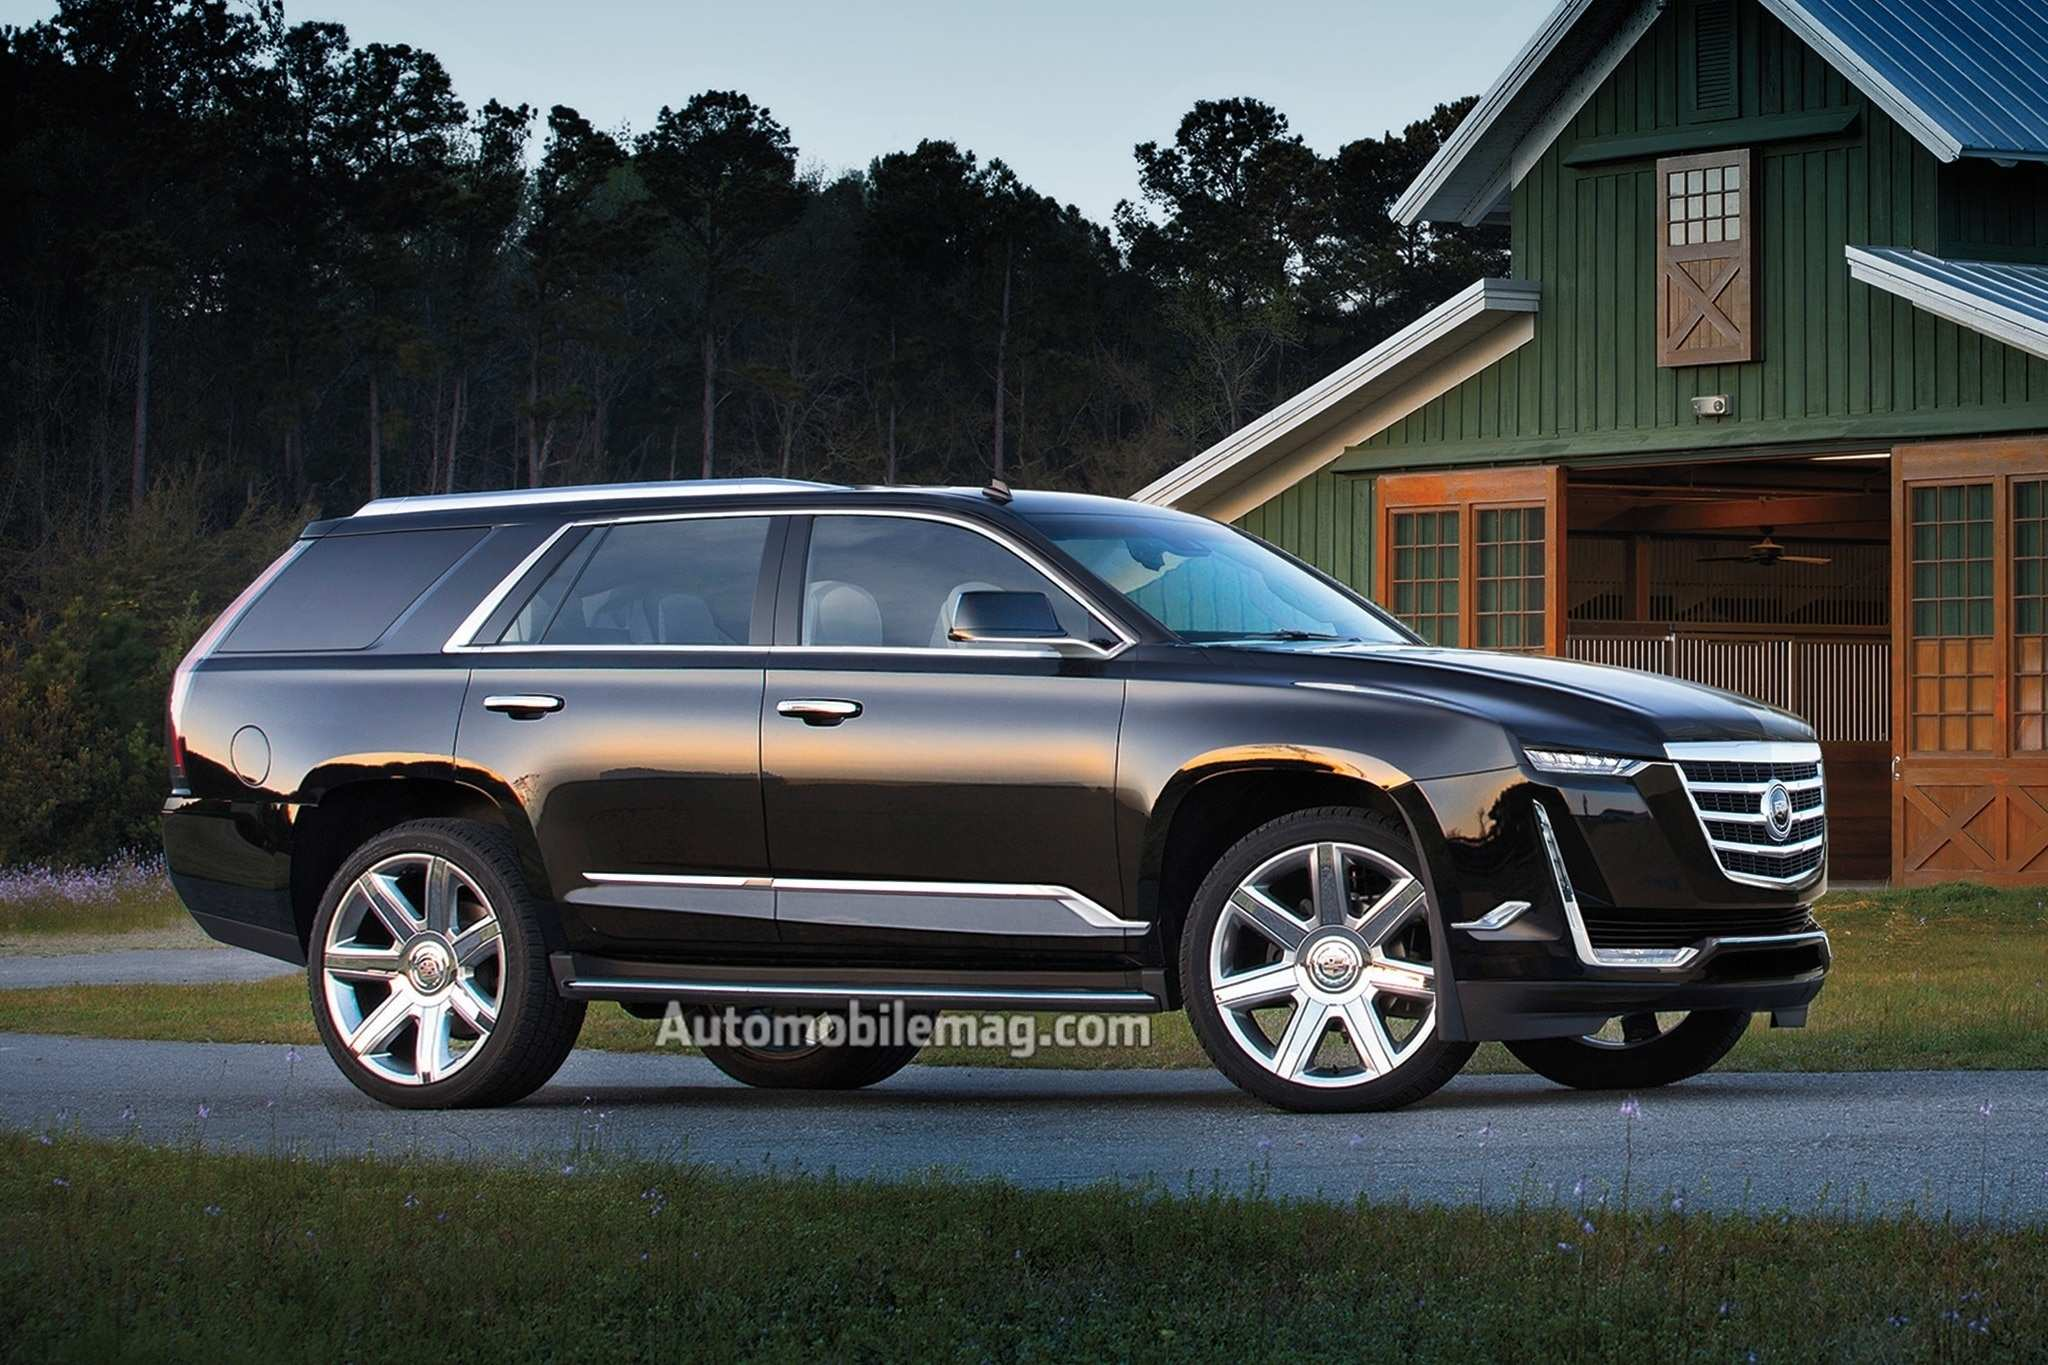 35 The Best 2020 GMC Yukon Denali Release Date Images